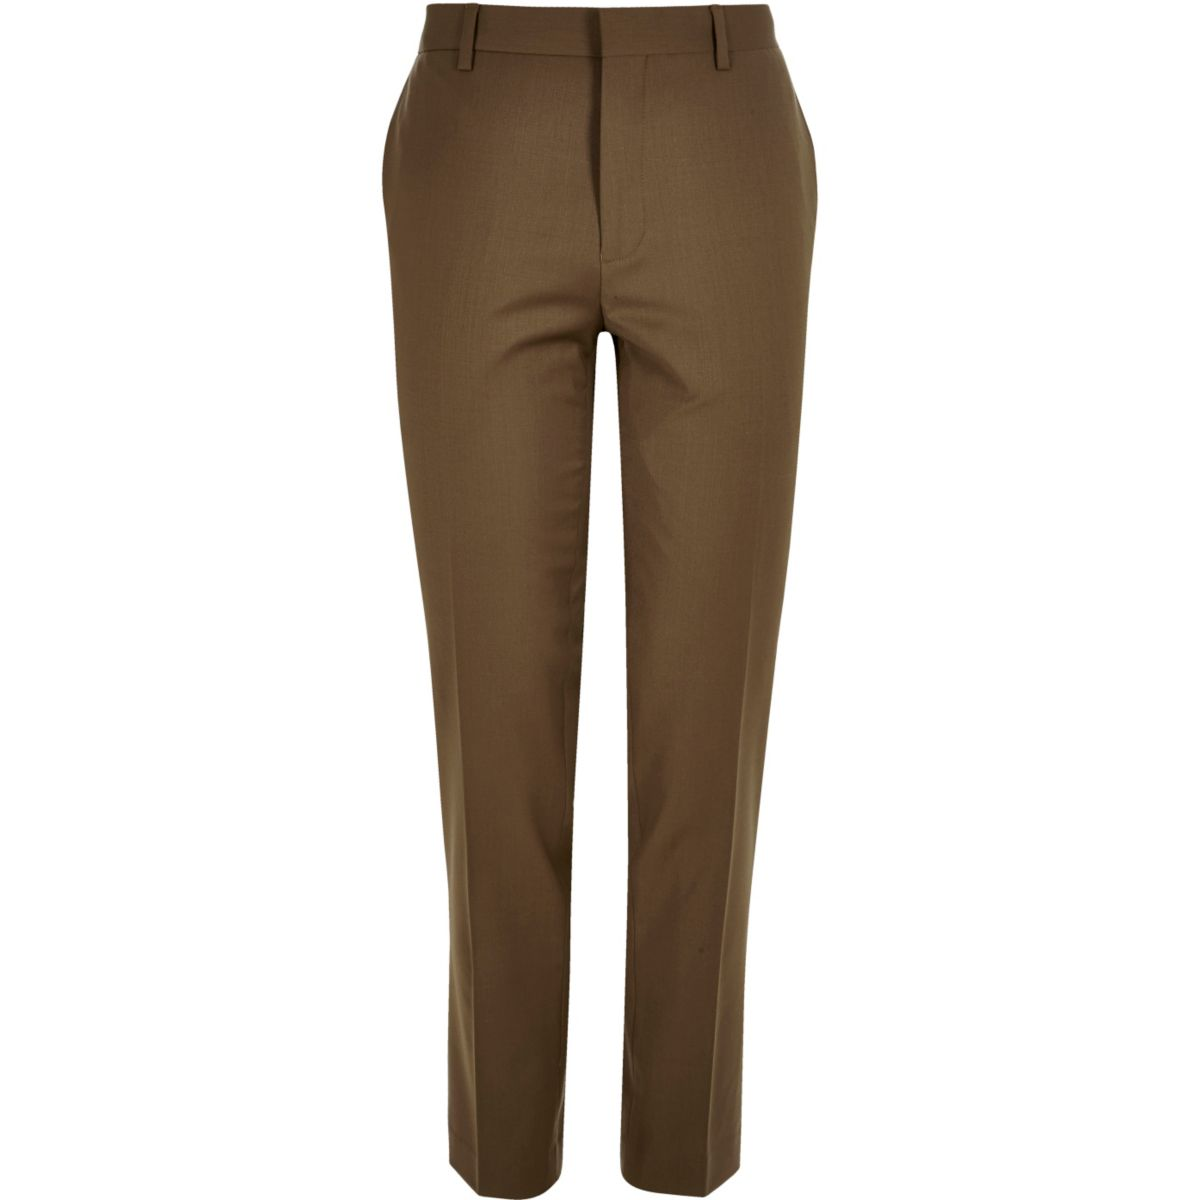 Brown skinny suit trousers